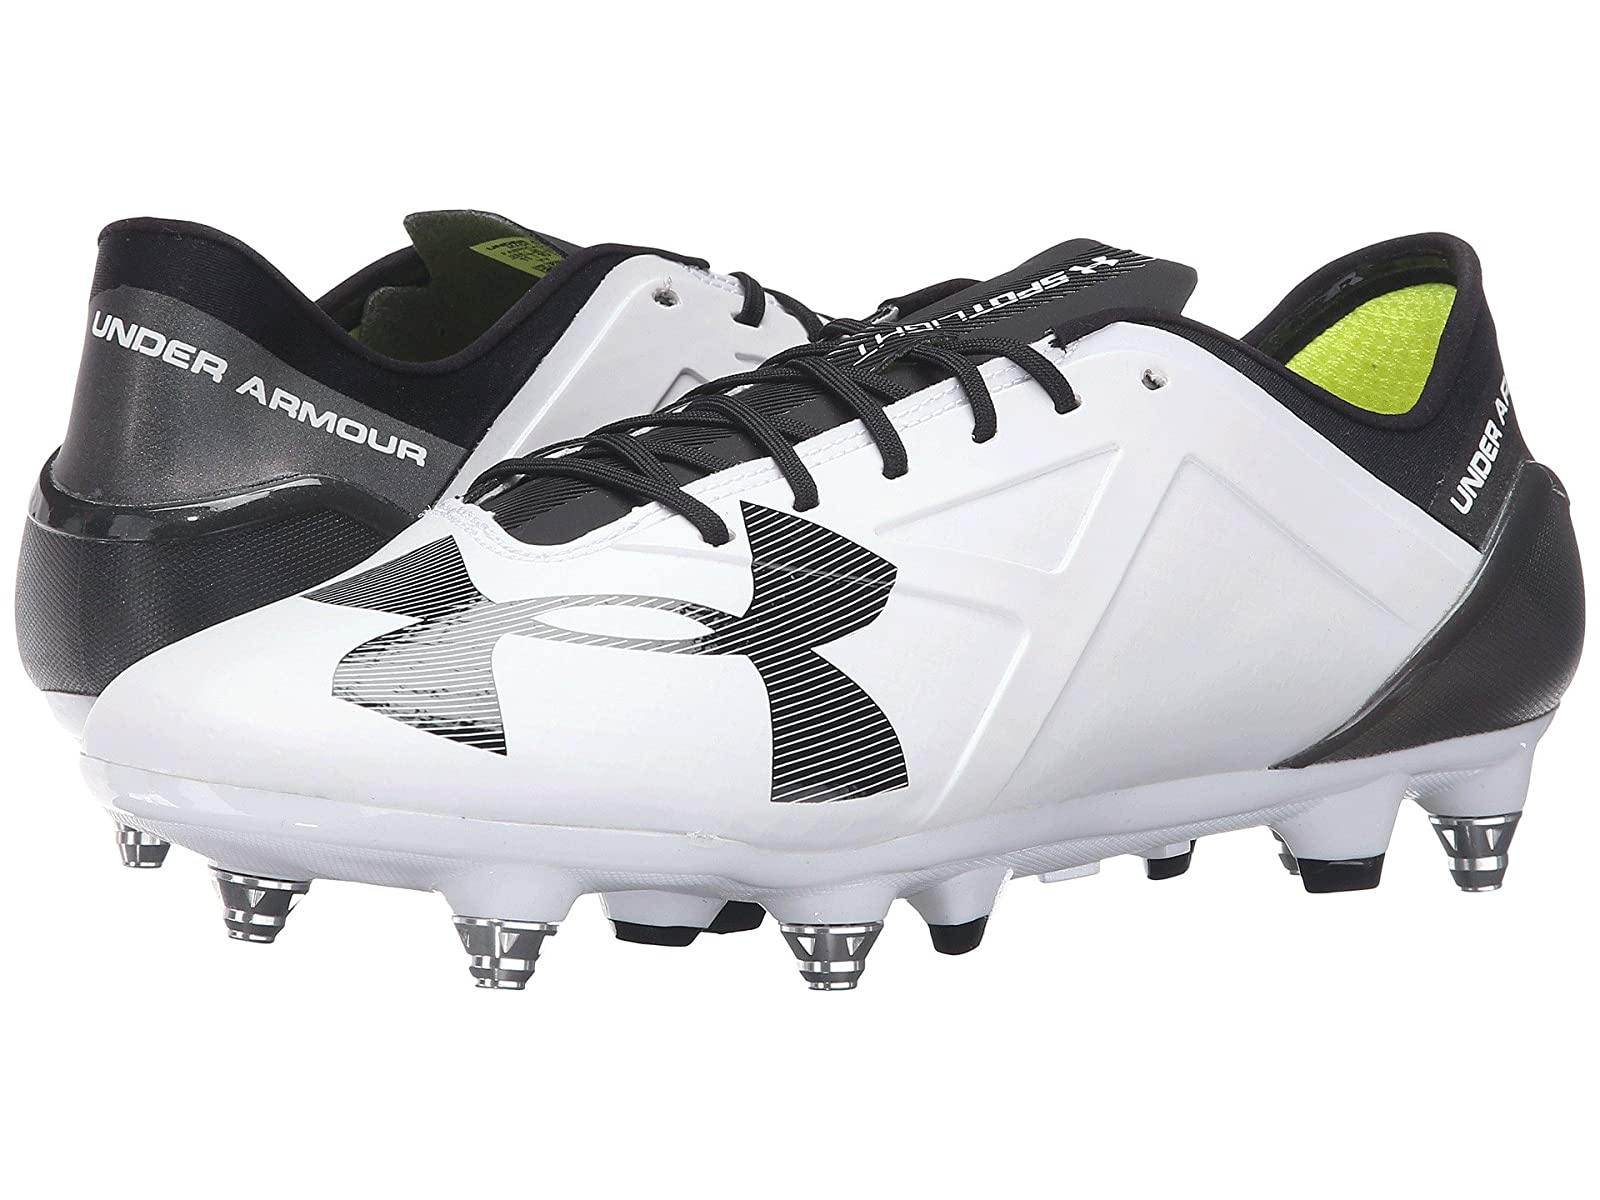 Under Armour UA Spotlight HybridCheap and distinctive eye-catching shoes